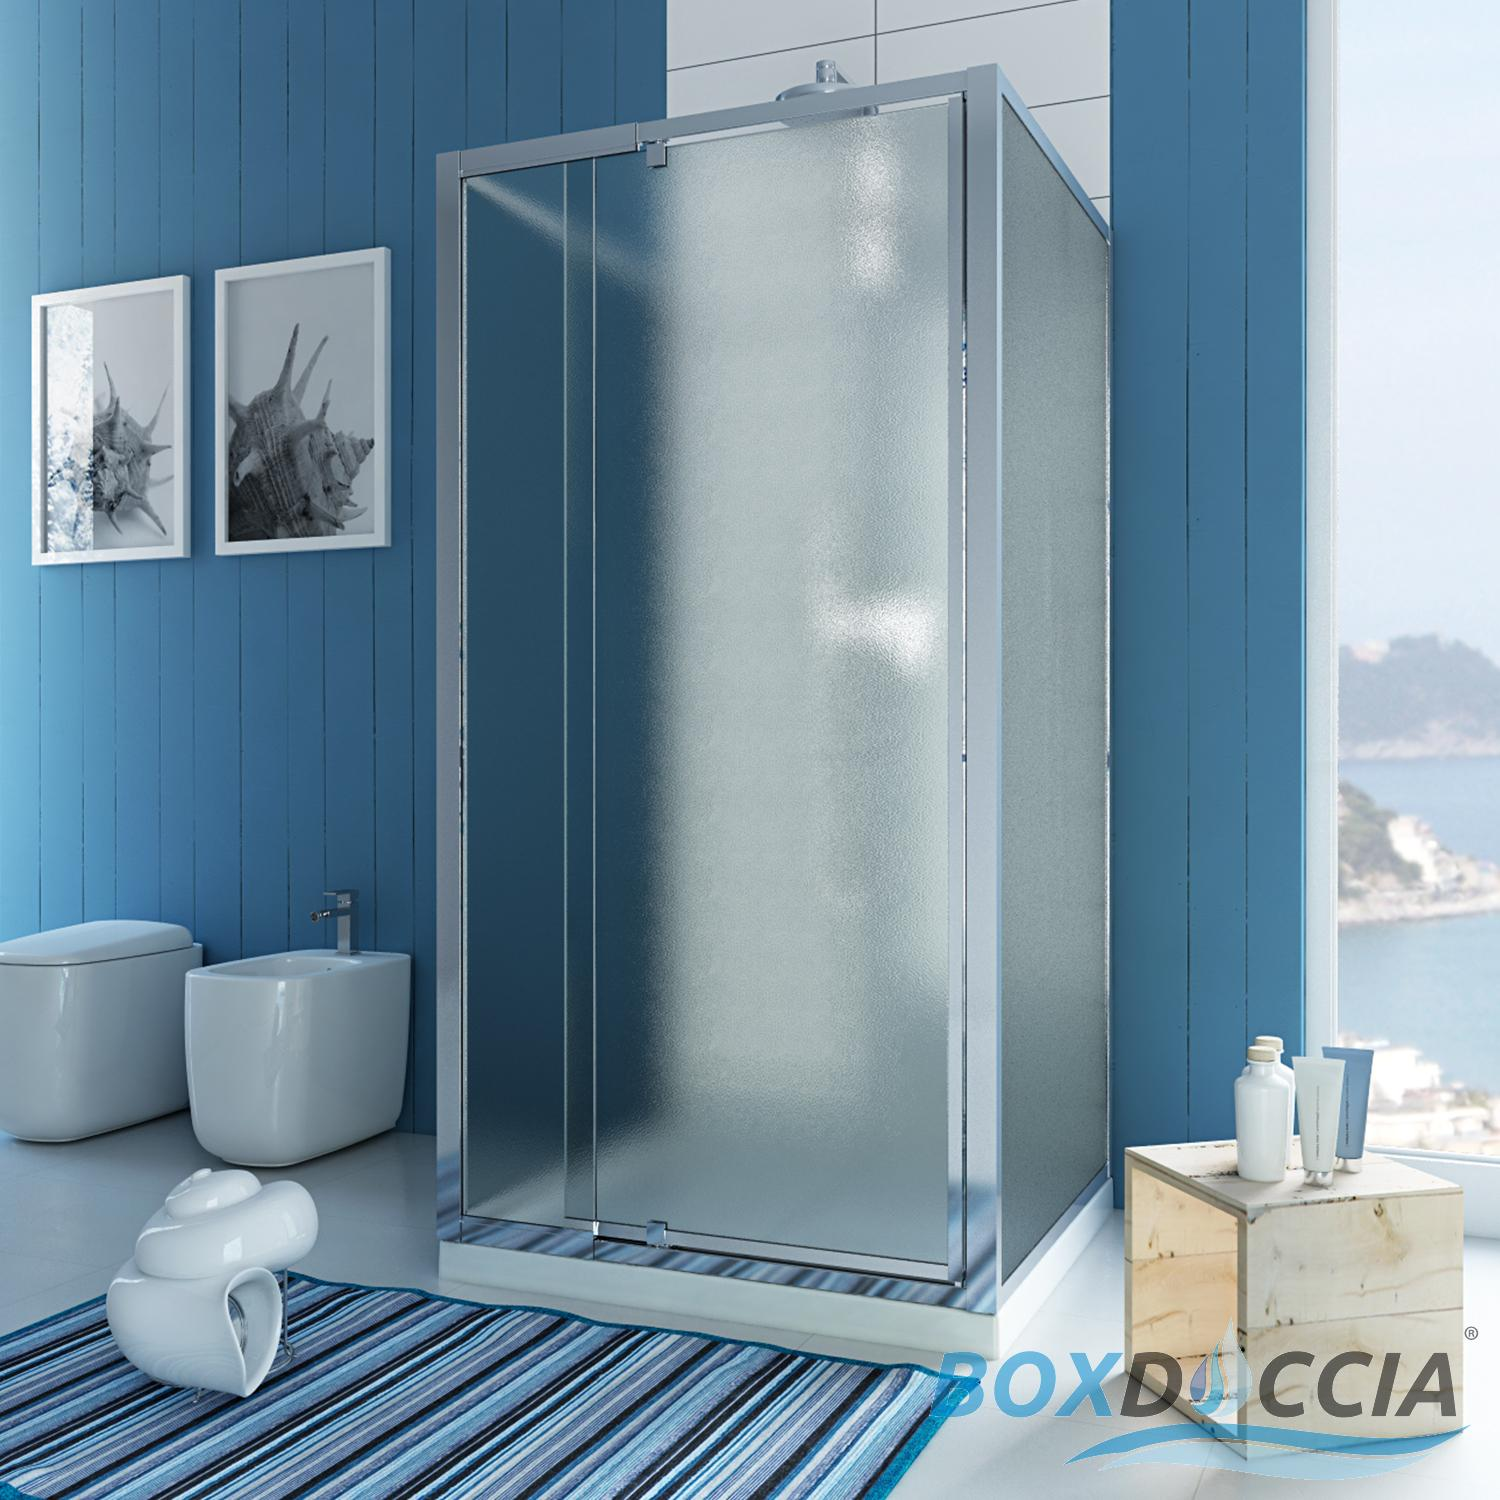 SHOWER ENCLOSURE 3 SIDED PIVOT DOOR HINGE CUBICLE GLASS BATHROOM ...